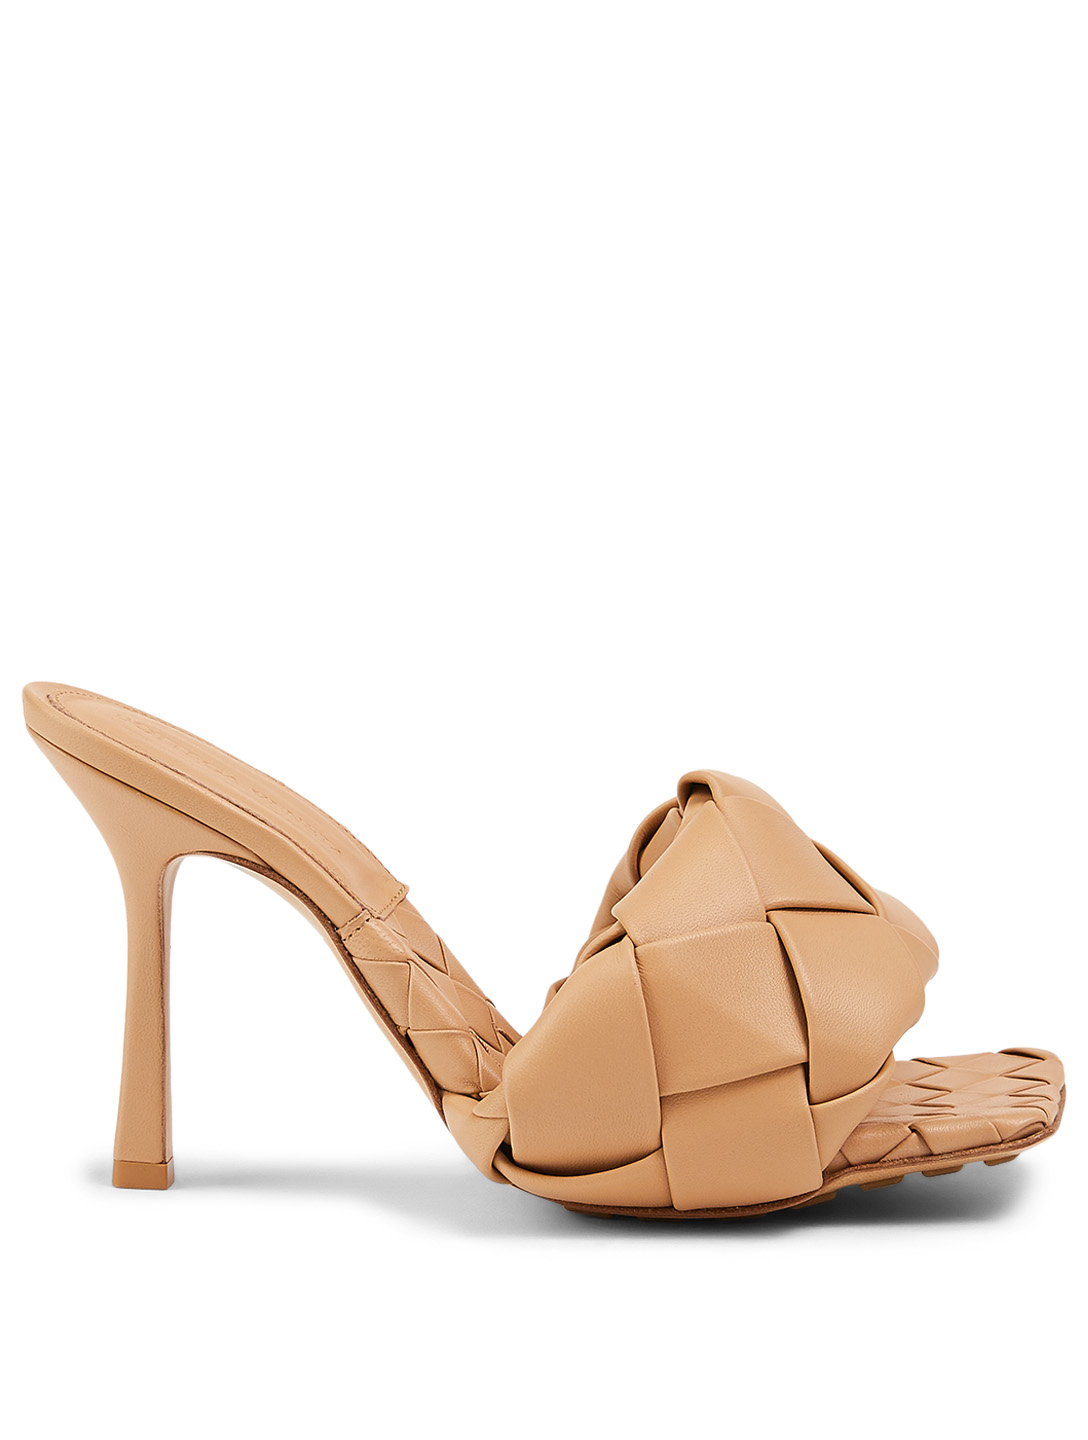 BOTTEGA VENETA BV Lido Intrecciato Leather Heeled Mule Sandals Women's Beige